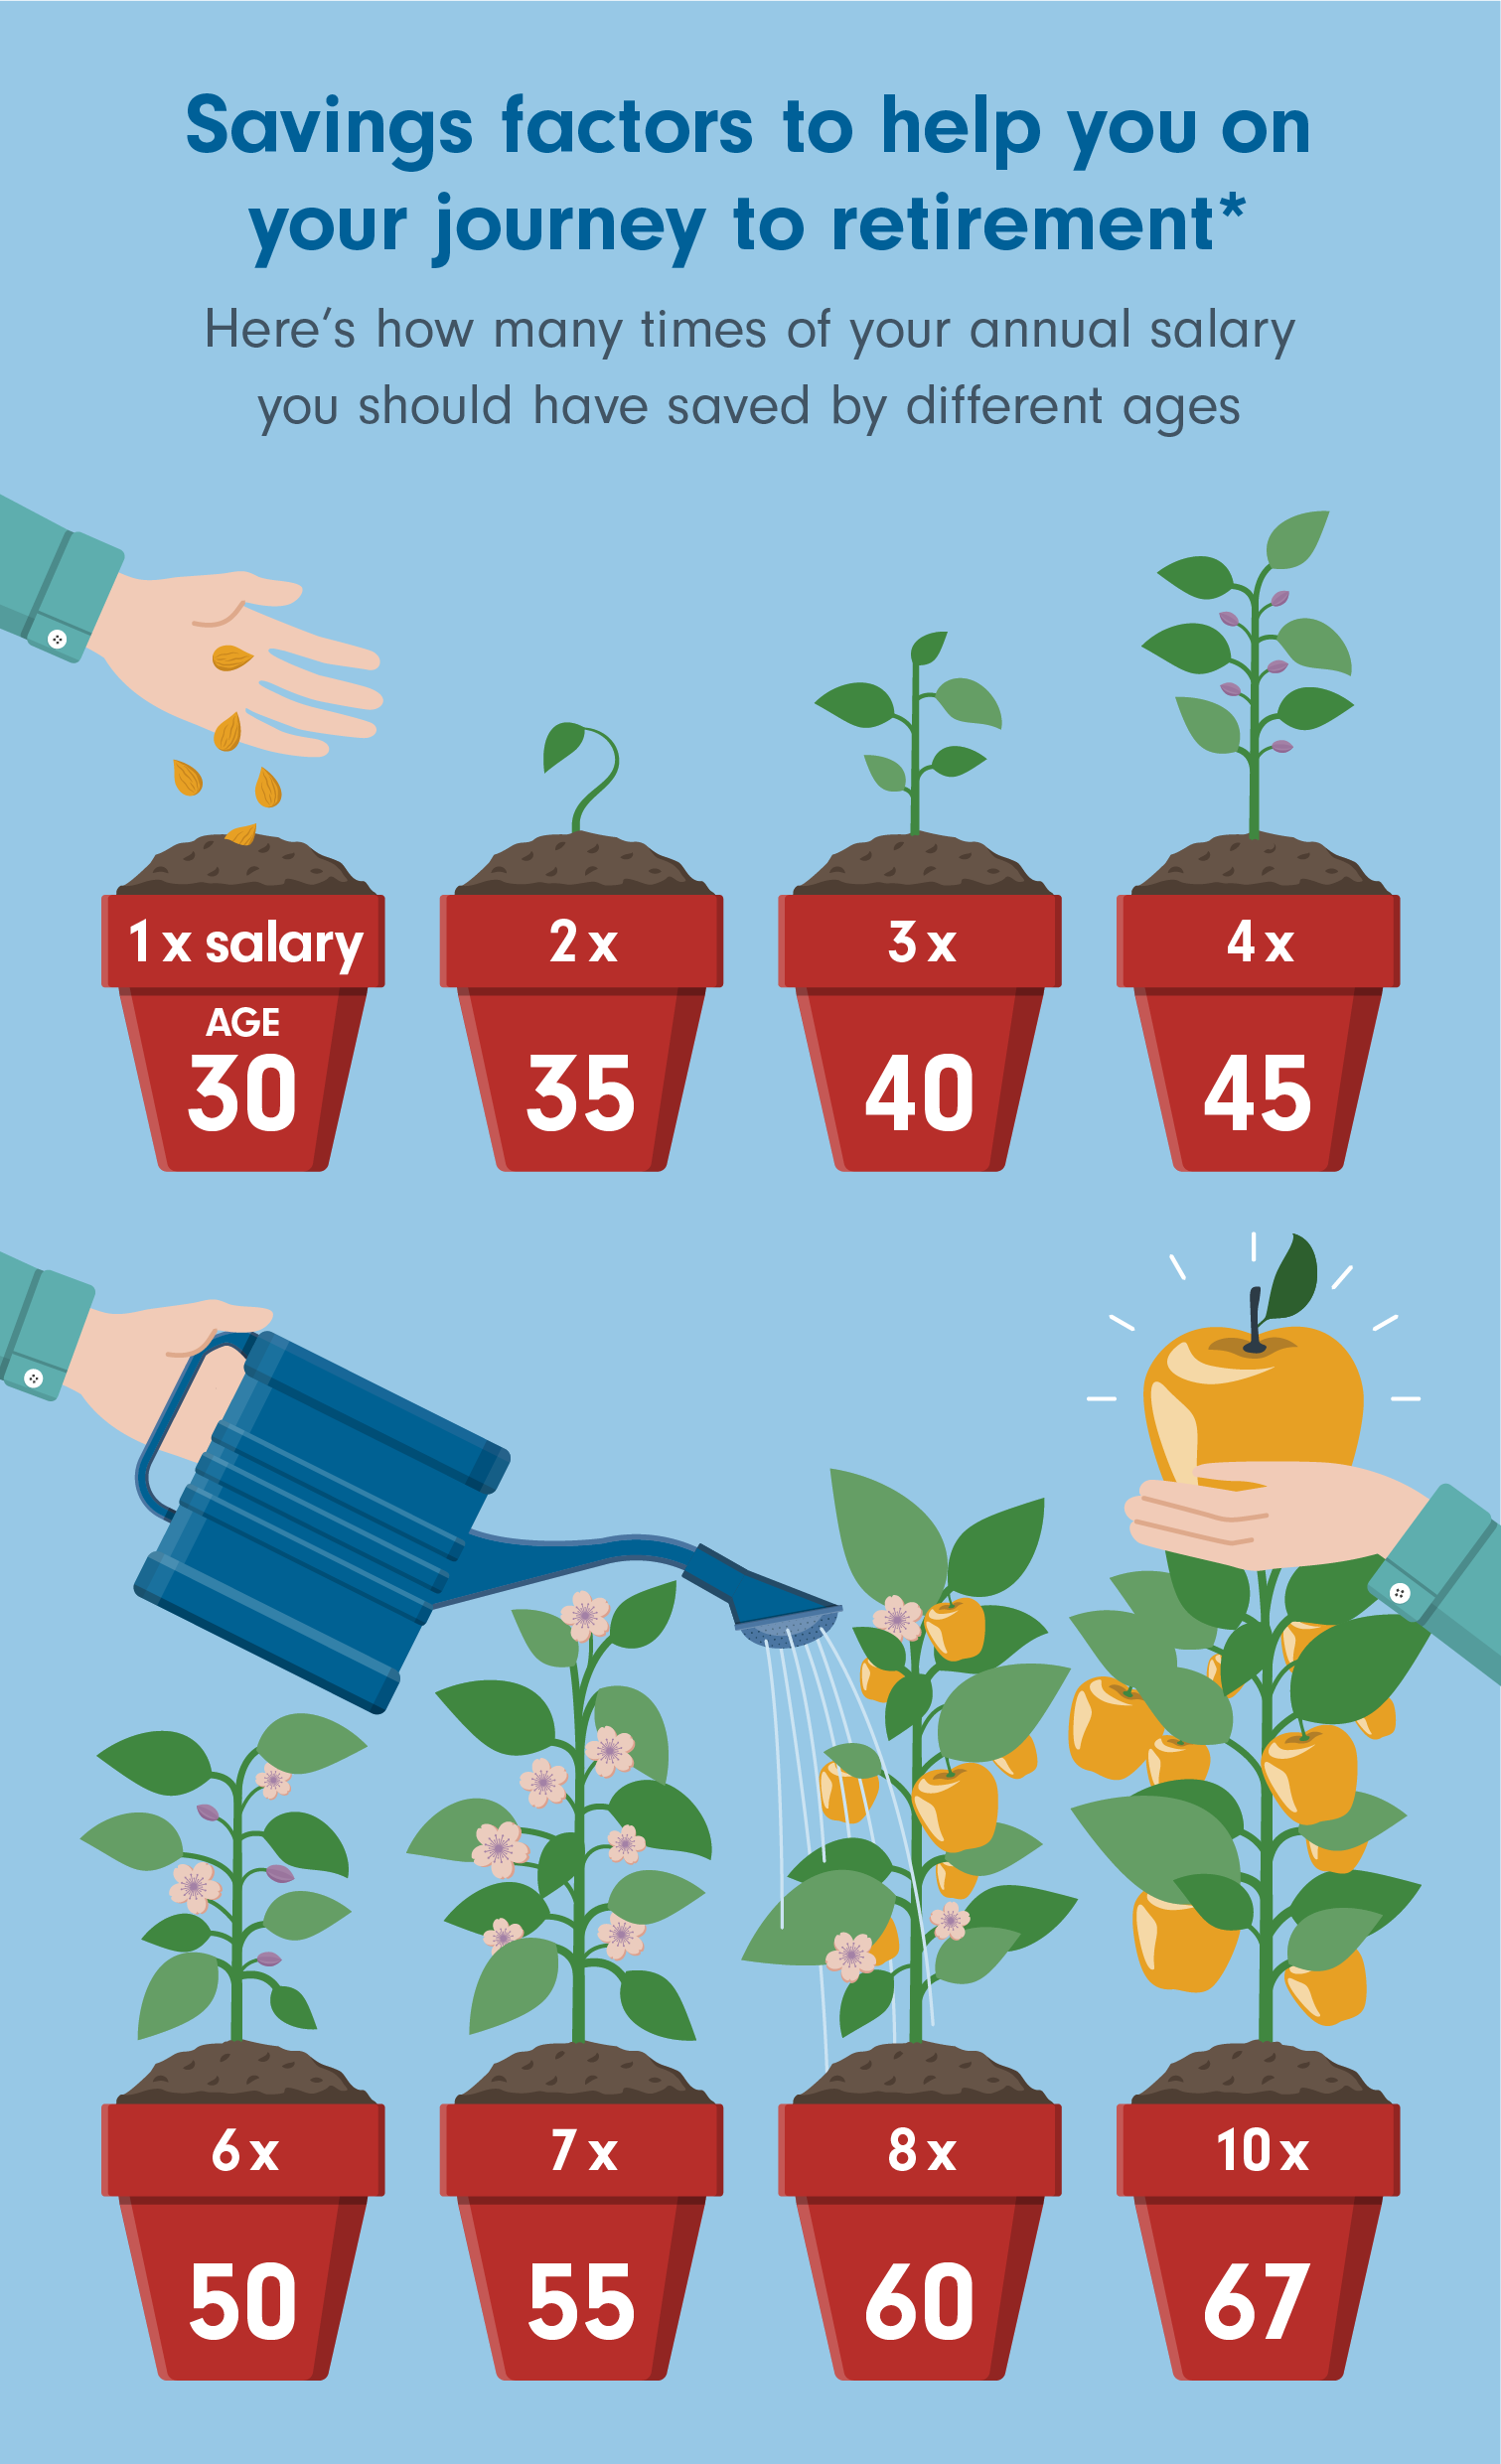 How much should you have saved for retirement by age 30?